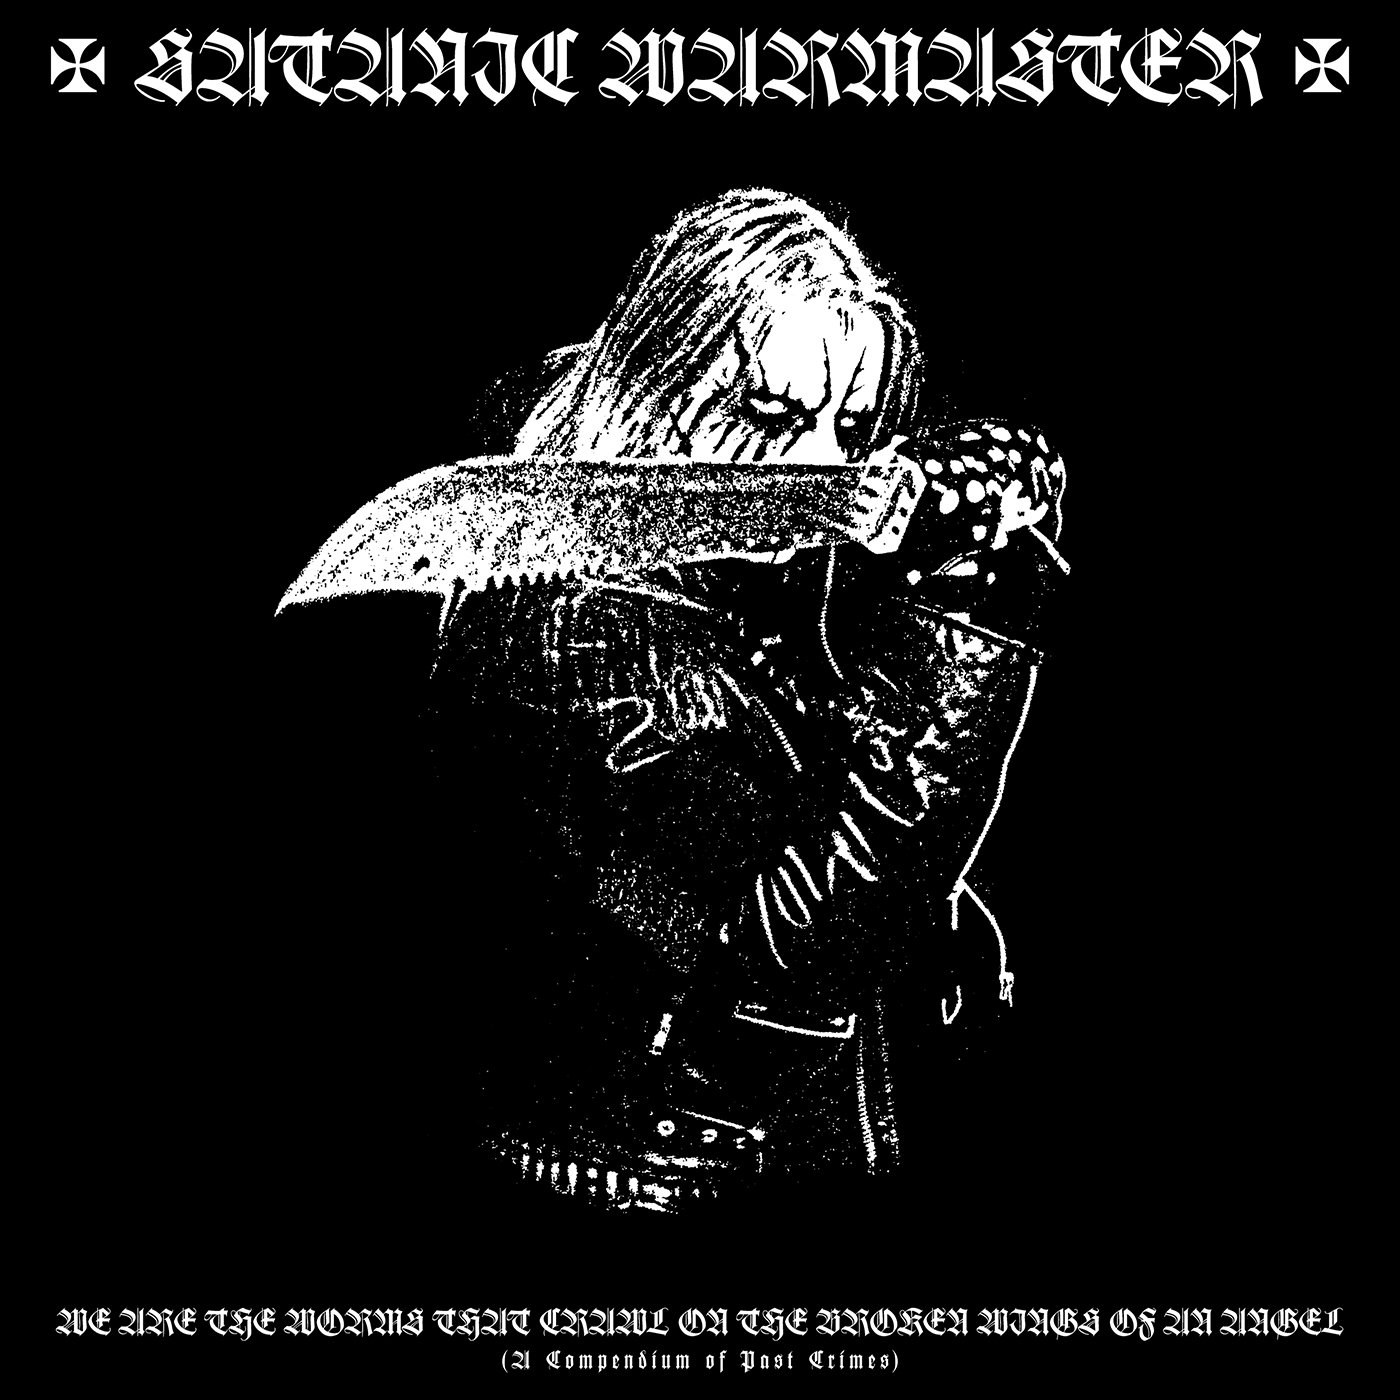 Review for Satanic Warmaster - We Are the Worms That Crawl on the Broken Wings of an Angel (A Compendium of Past Crimes)